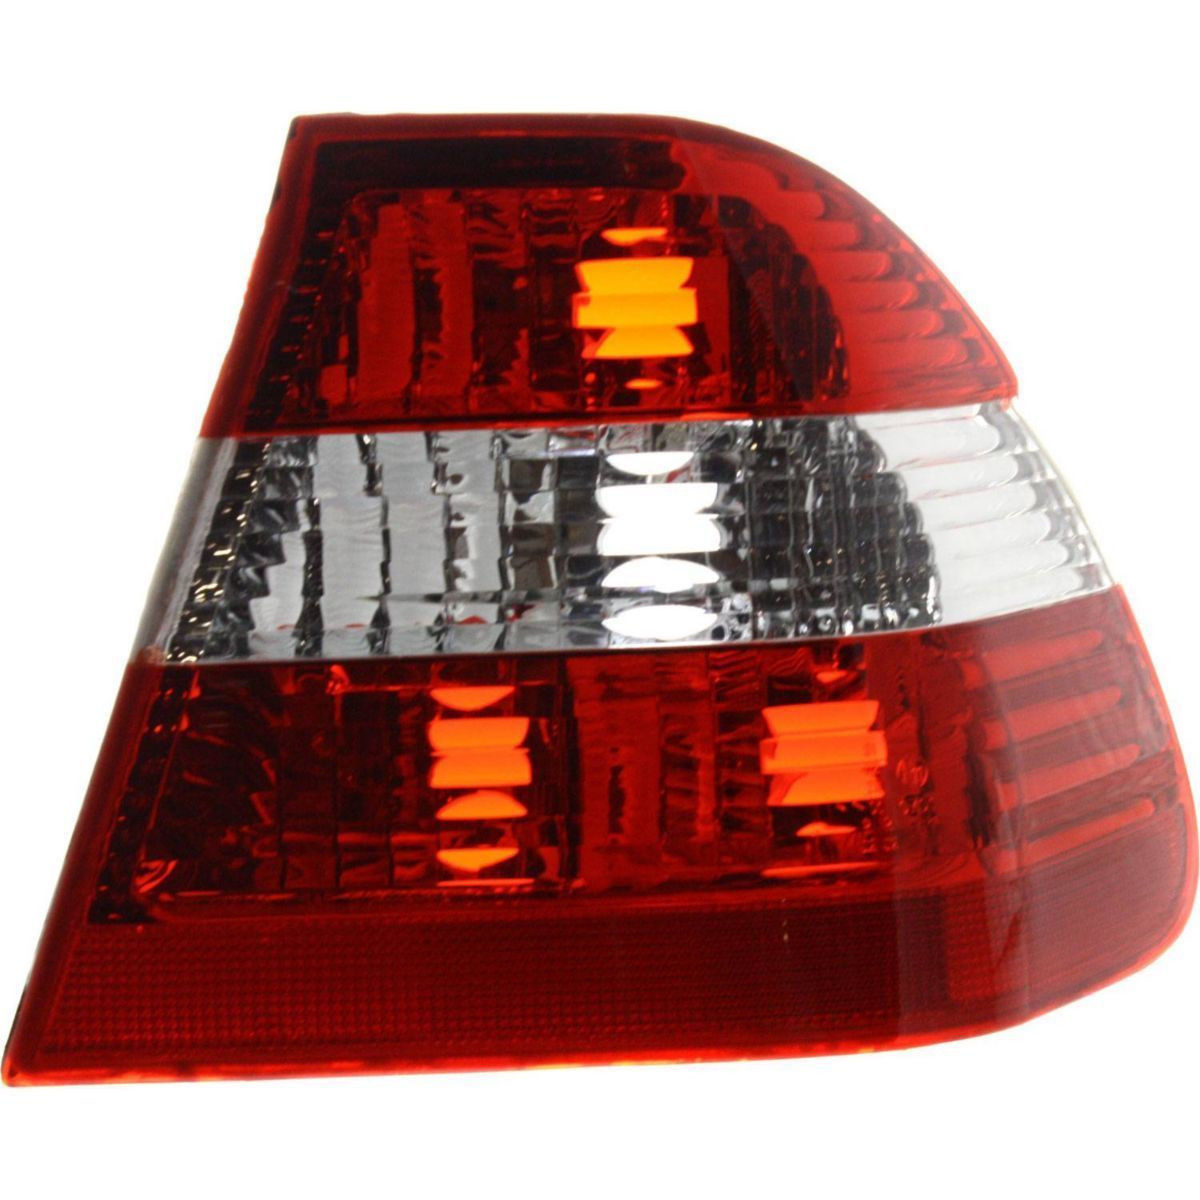 <b>Passenger Side Tail Lamp Lens and Housing Fits BMW 325i 325xi 330xi BM2801111 63216946534 </b>